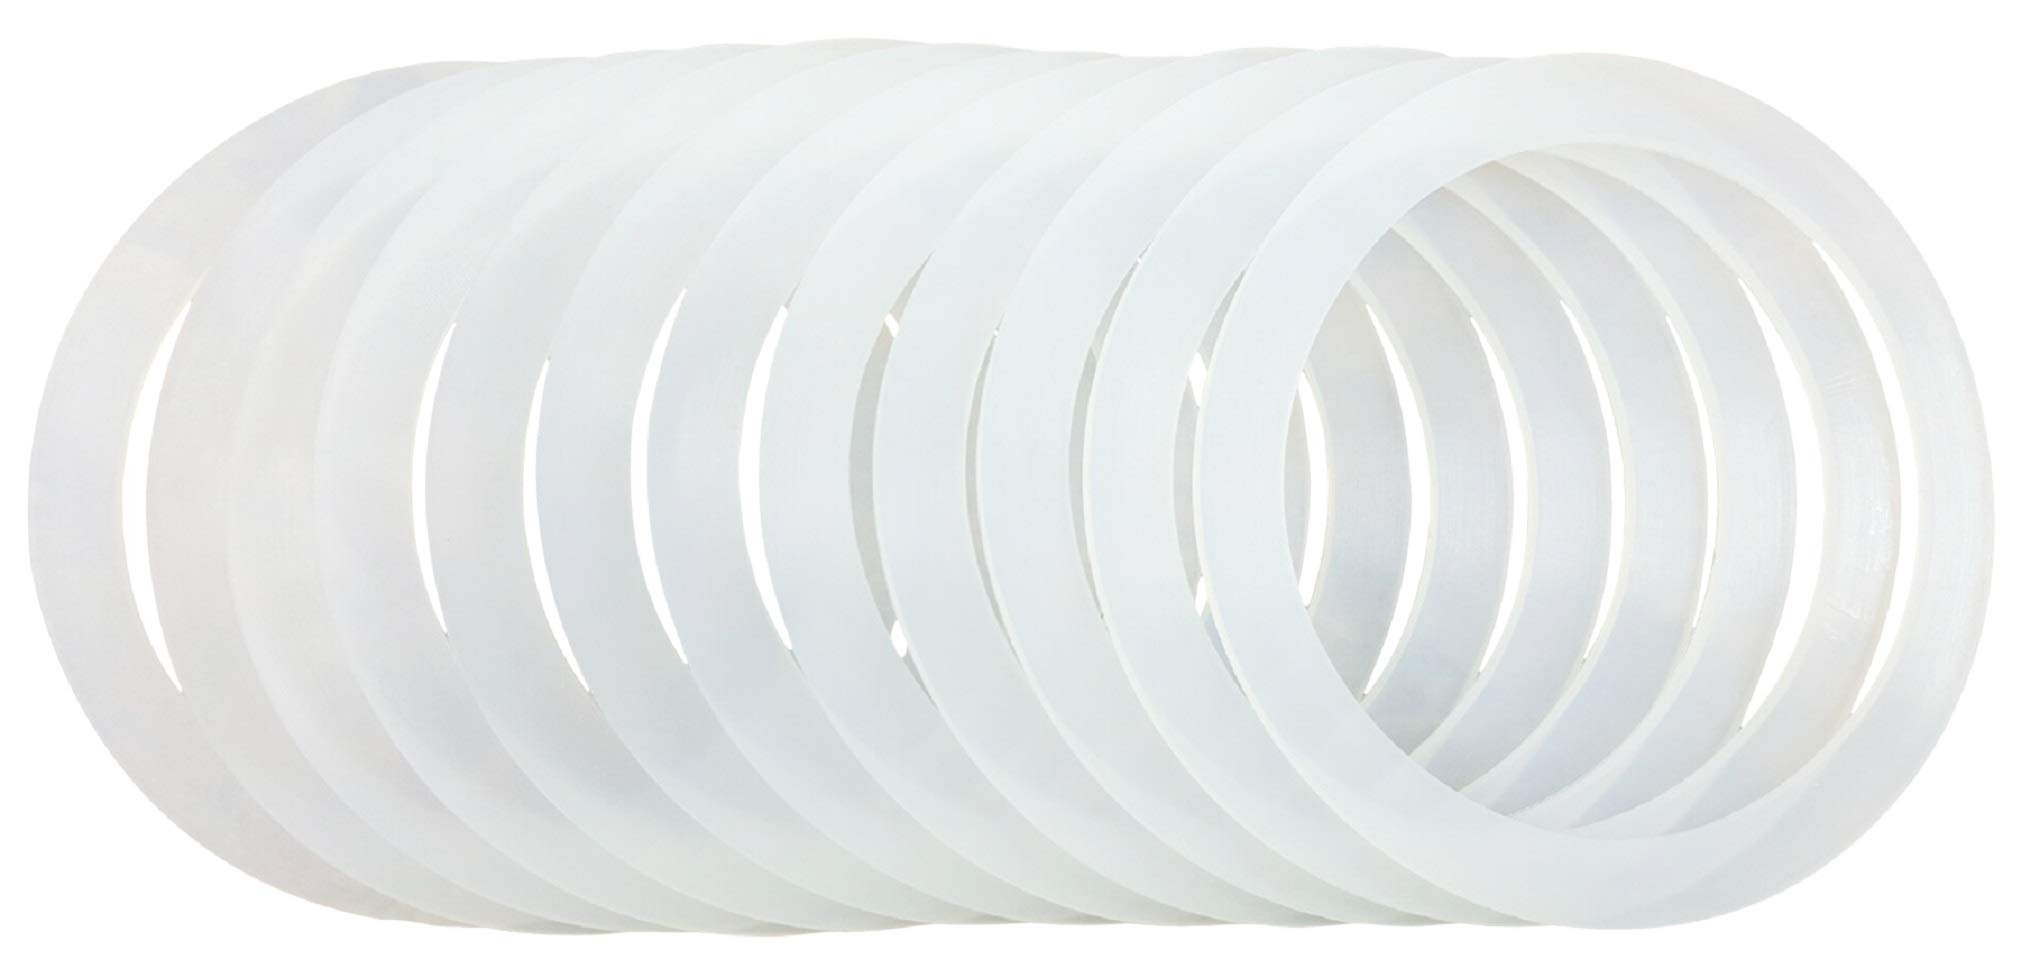 12 Silicone Gasket Sealing Rings For Mason Jar/Ball Plastic Storage Cap, Reusable Food-Grade Airtight Rubber Seal For Caning Jar Plastic Lids (12 WIDE MOUTH)